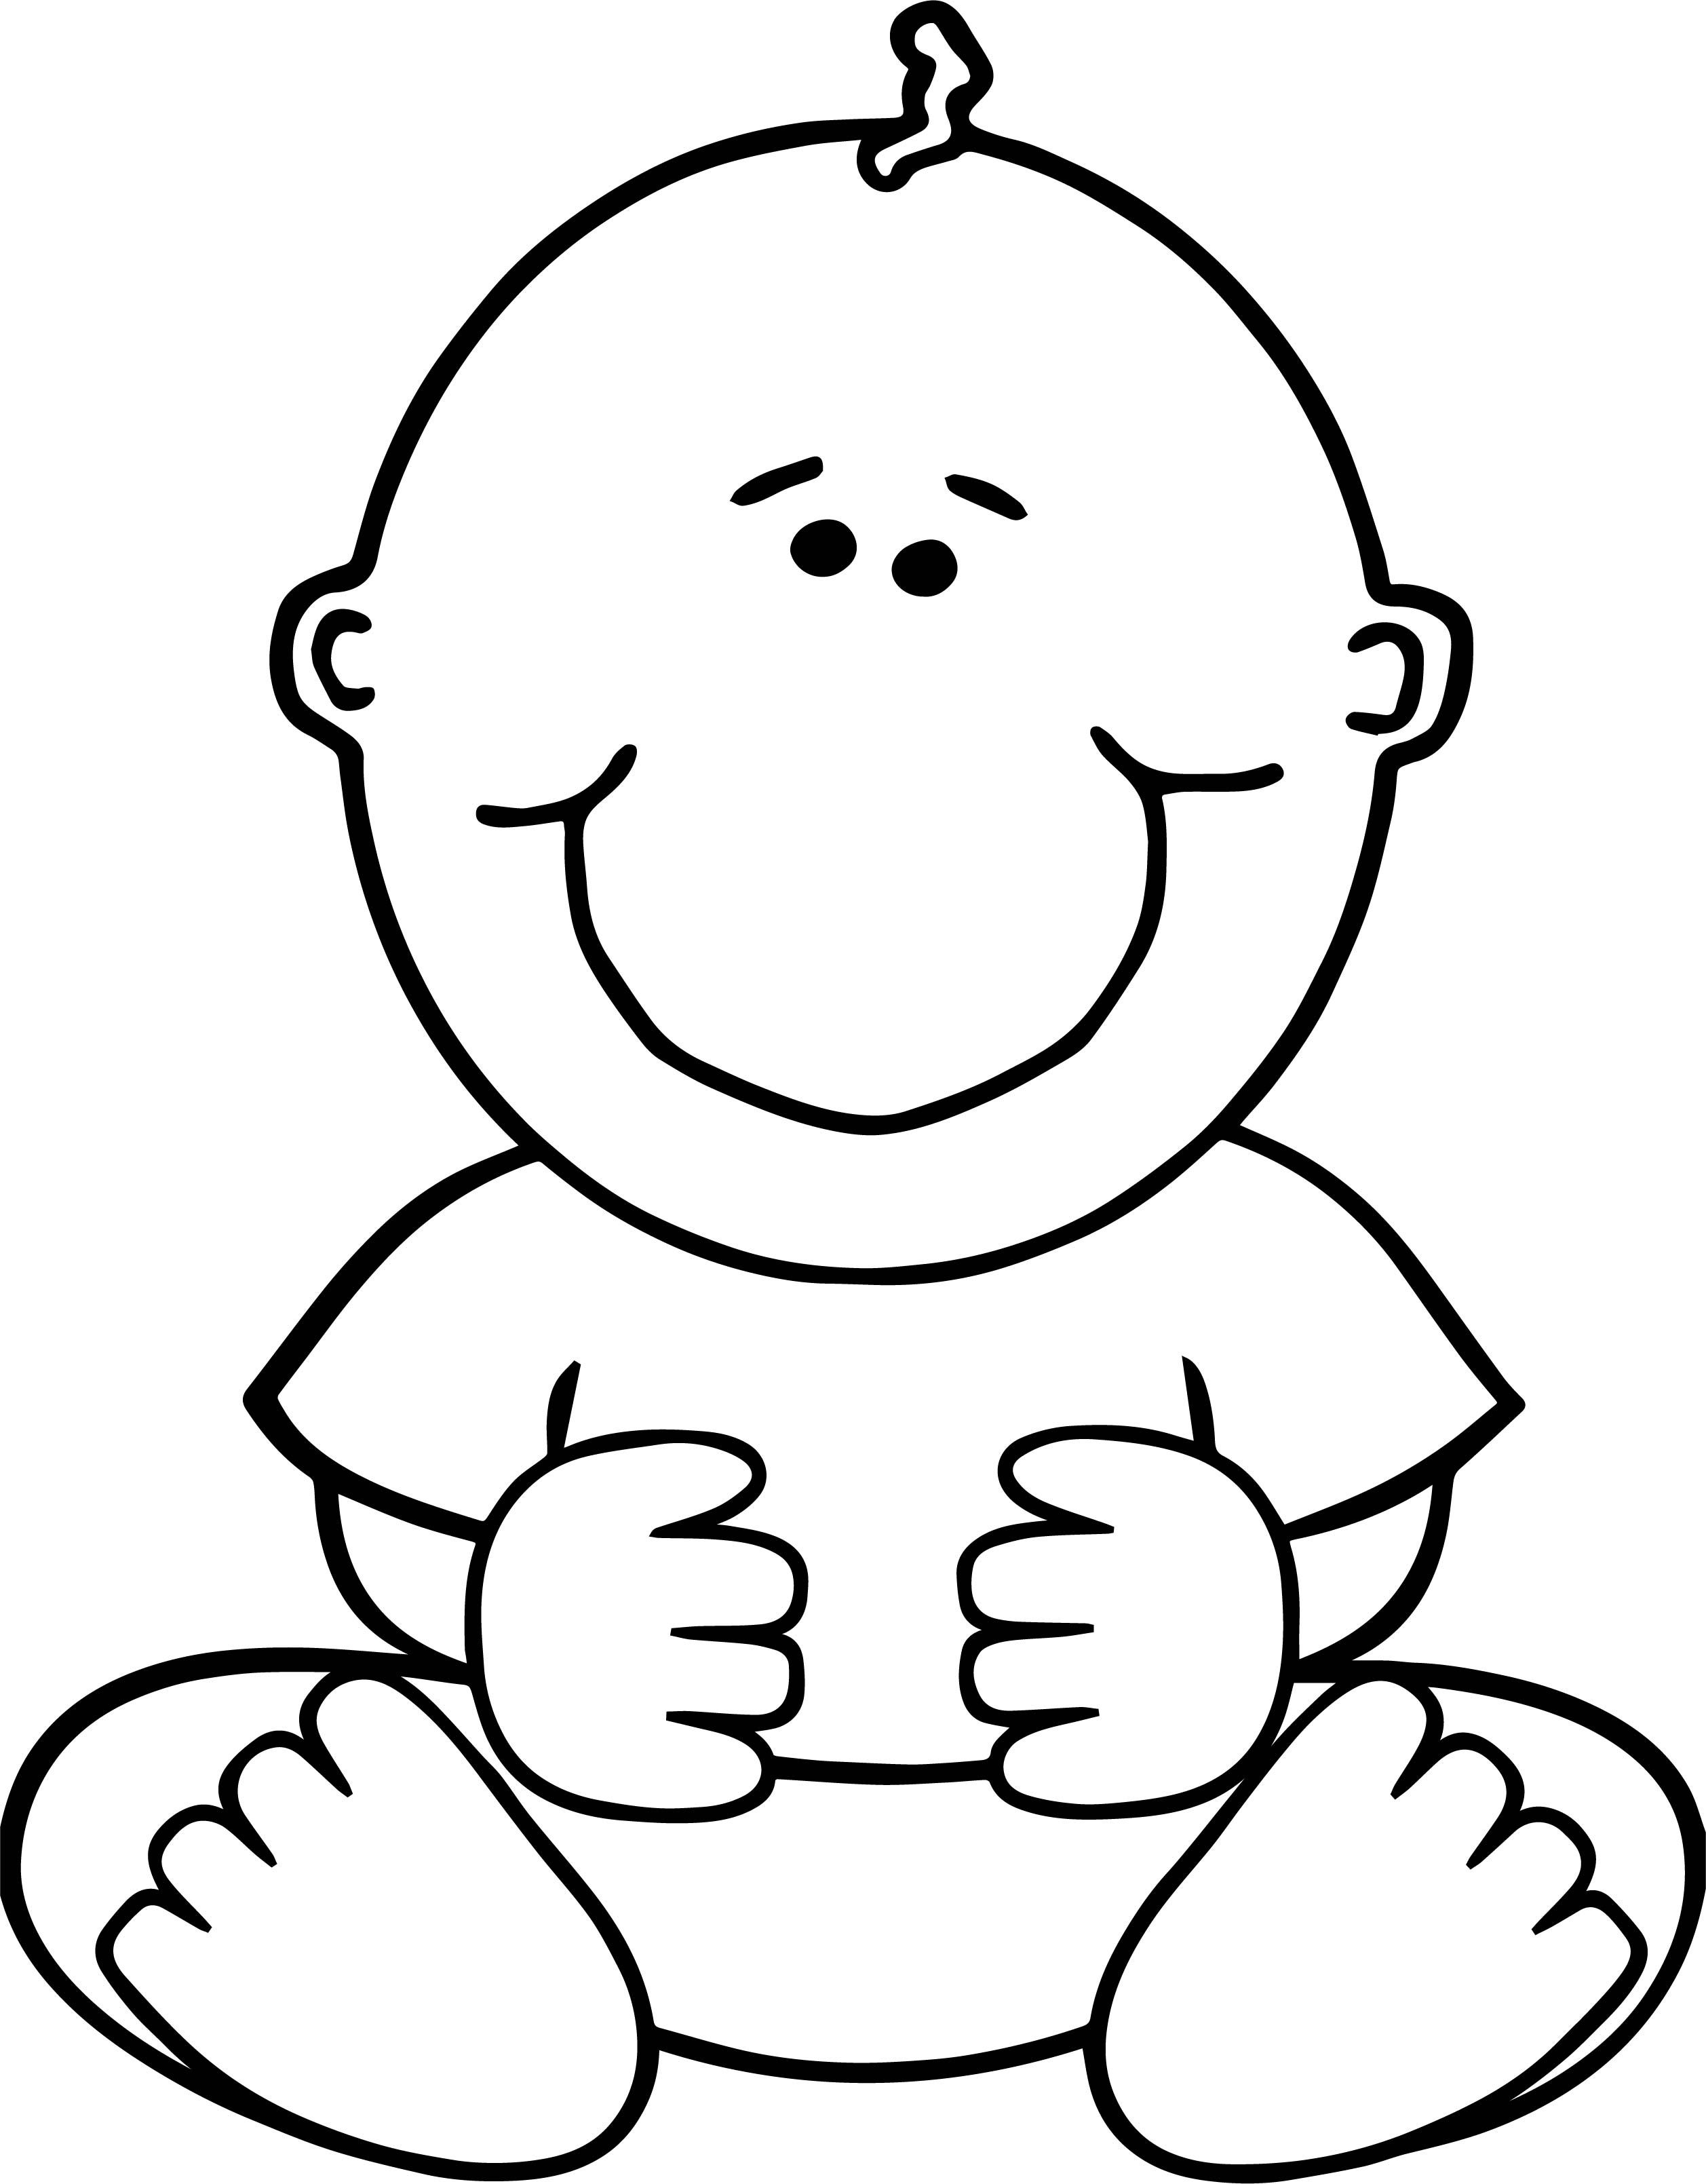 Awesome Sitdown Baby Boy Coloring Page Baby Coloring Pages Coloring Pages For Boys Puppy Coloring Pages